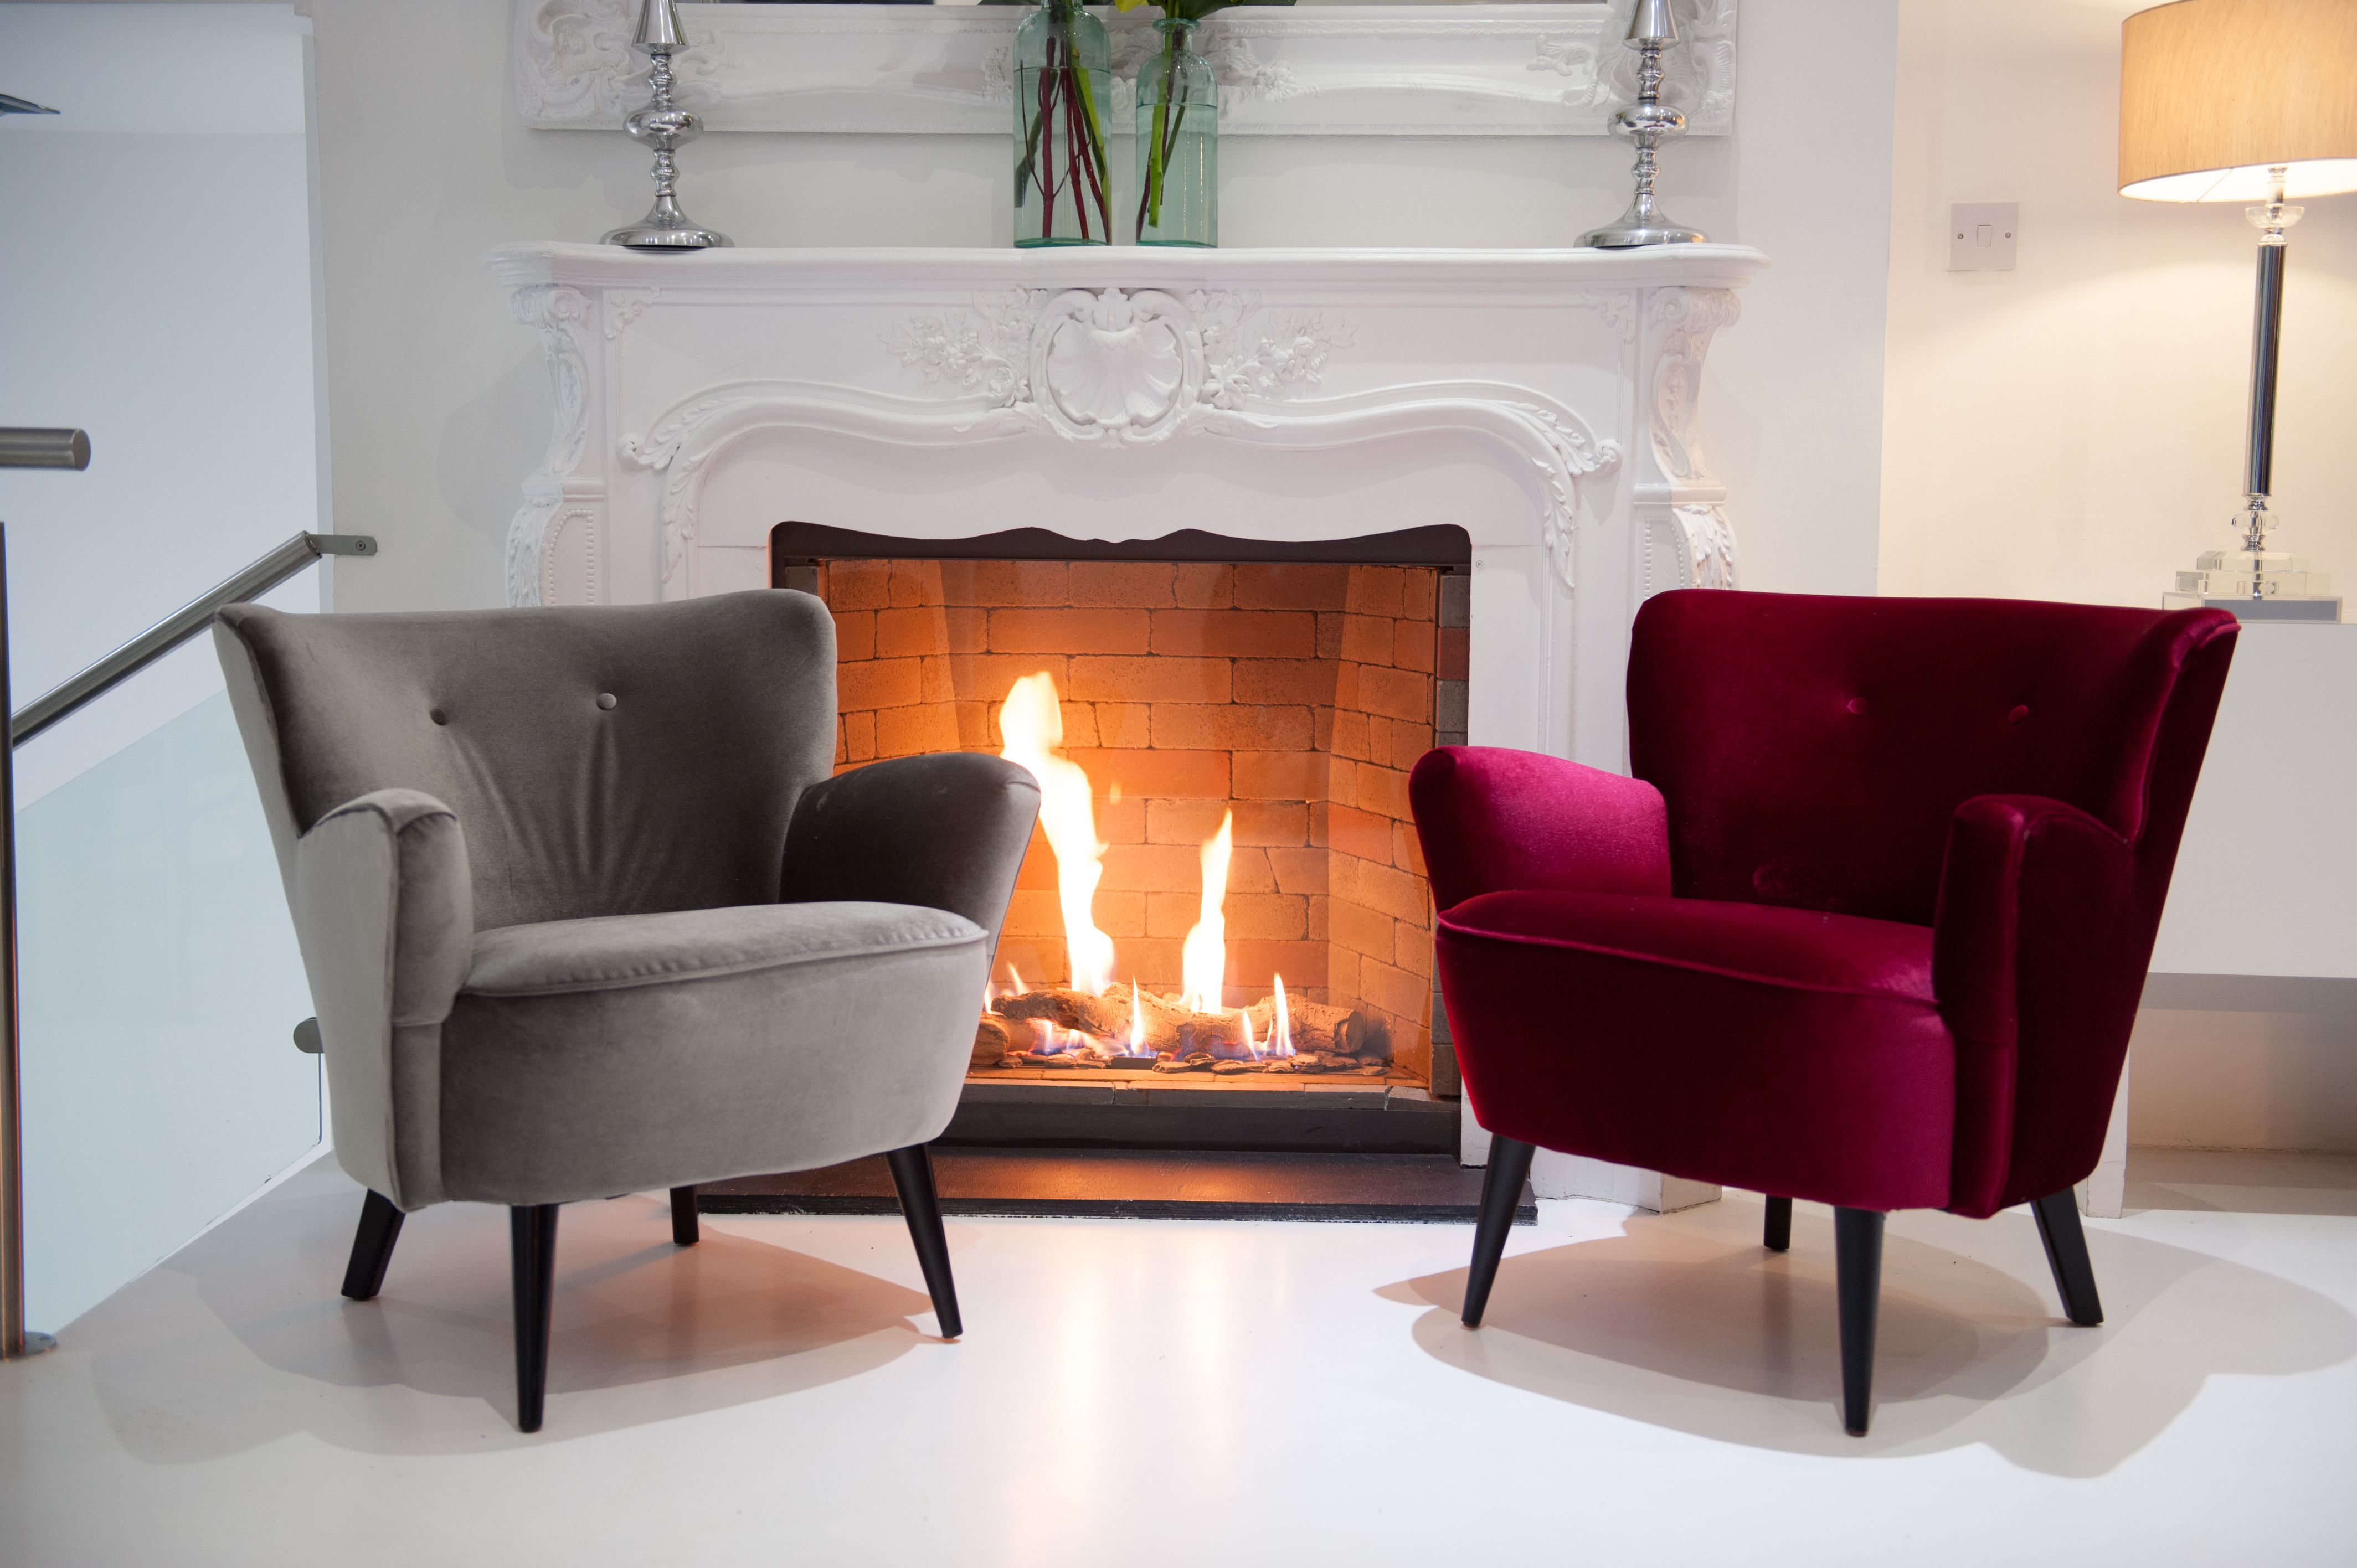 Grey And Red Velvet Solo Chair Solochair Velvetchair Greyvelvet Redvelvet Velvetsofa Loungesofa Loungeare In 2020 Velvet Living Room Fire Pit Sets Red Furniture #red #velvet #living #room #set